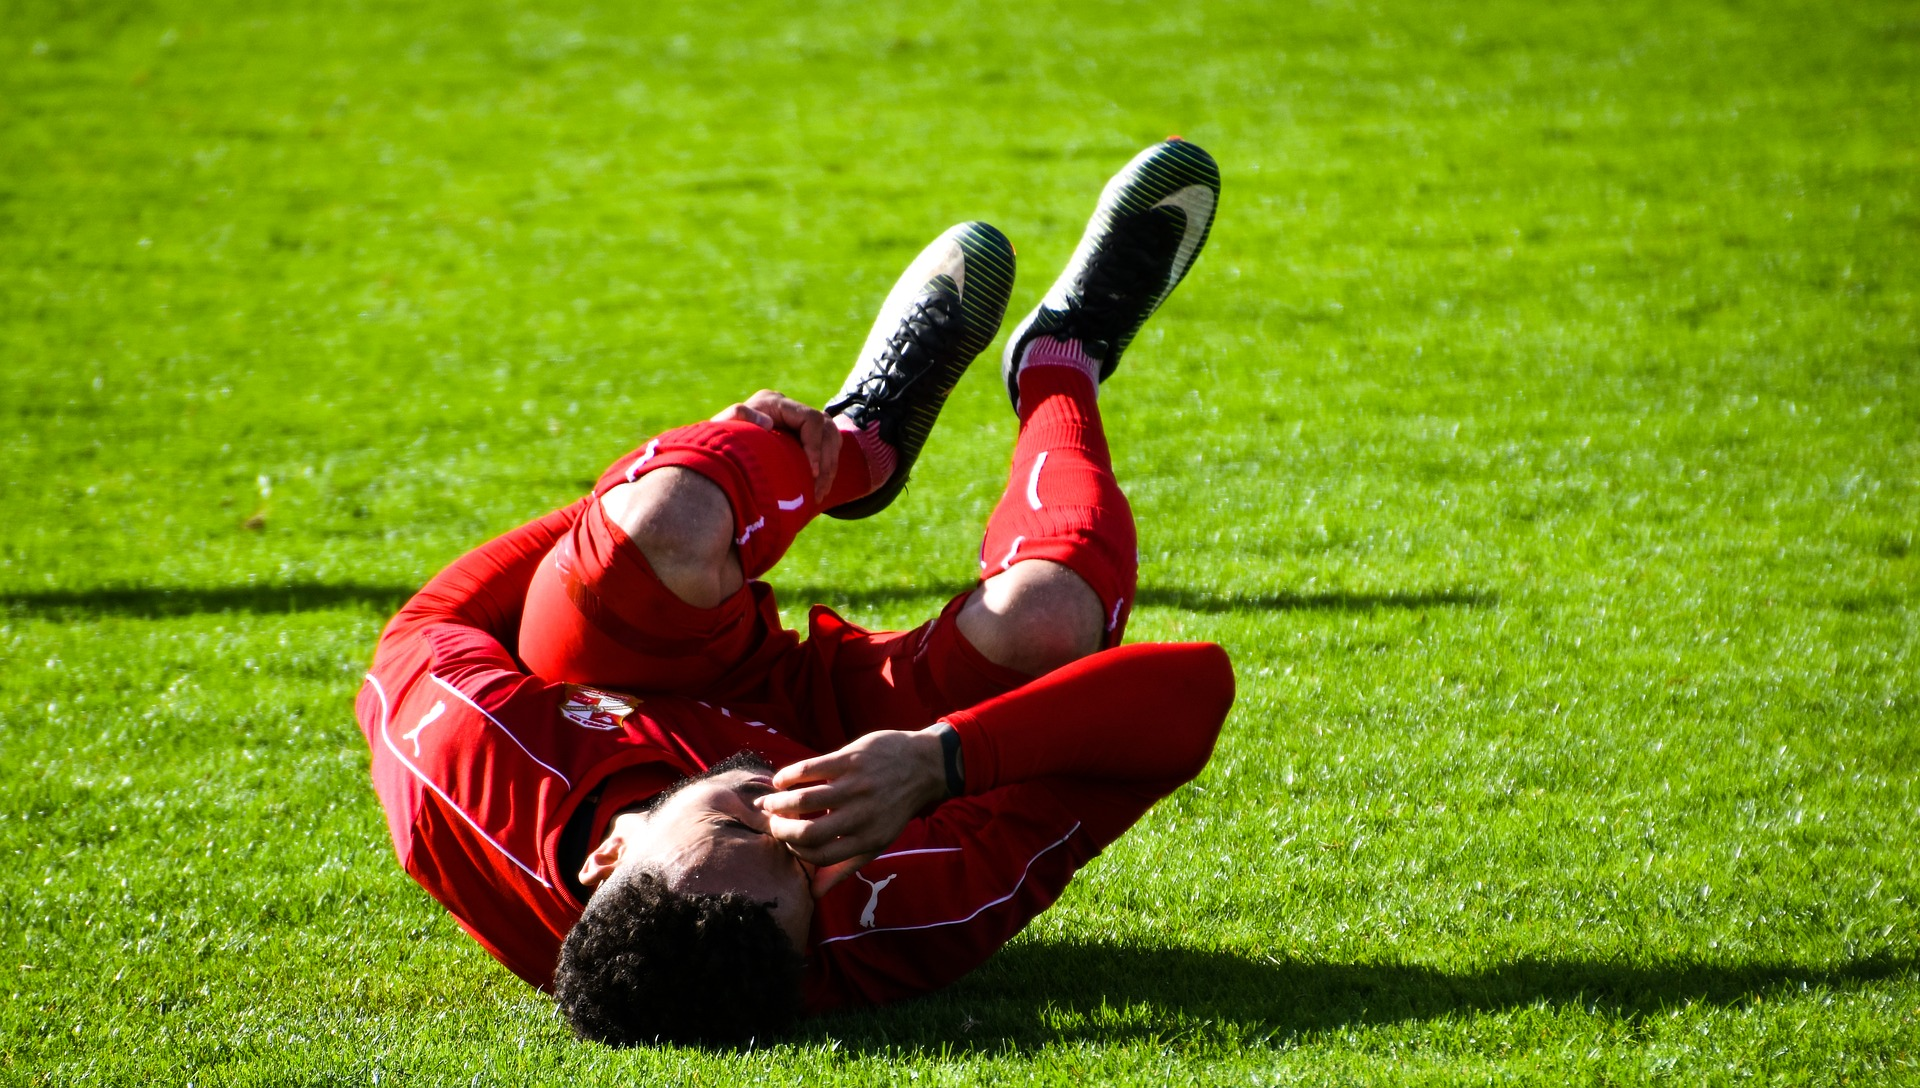 How Sports Physiotherapy Improves Performance